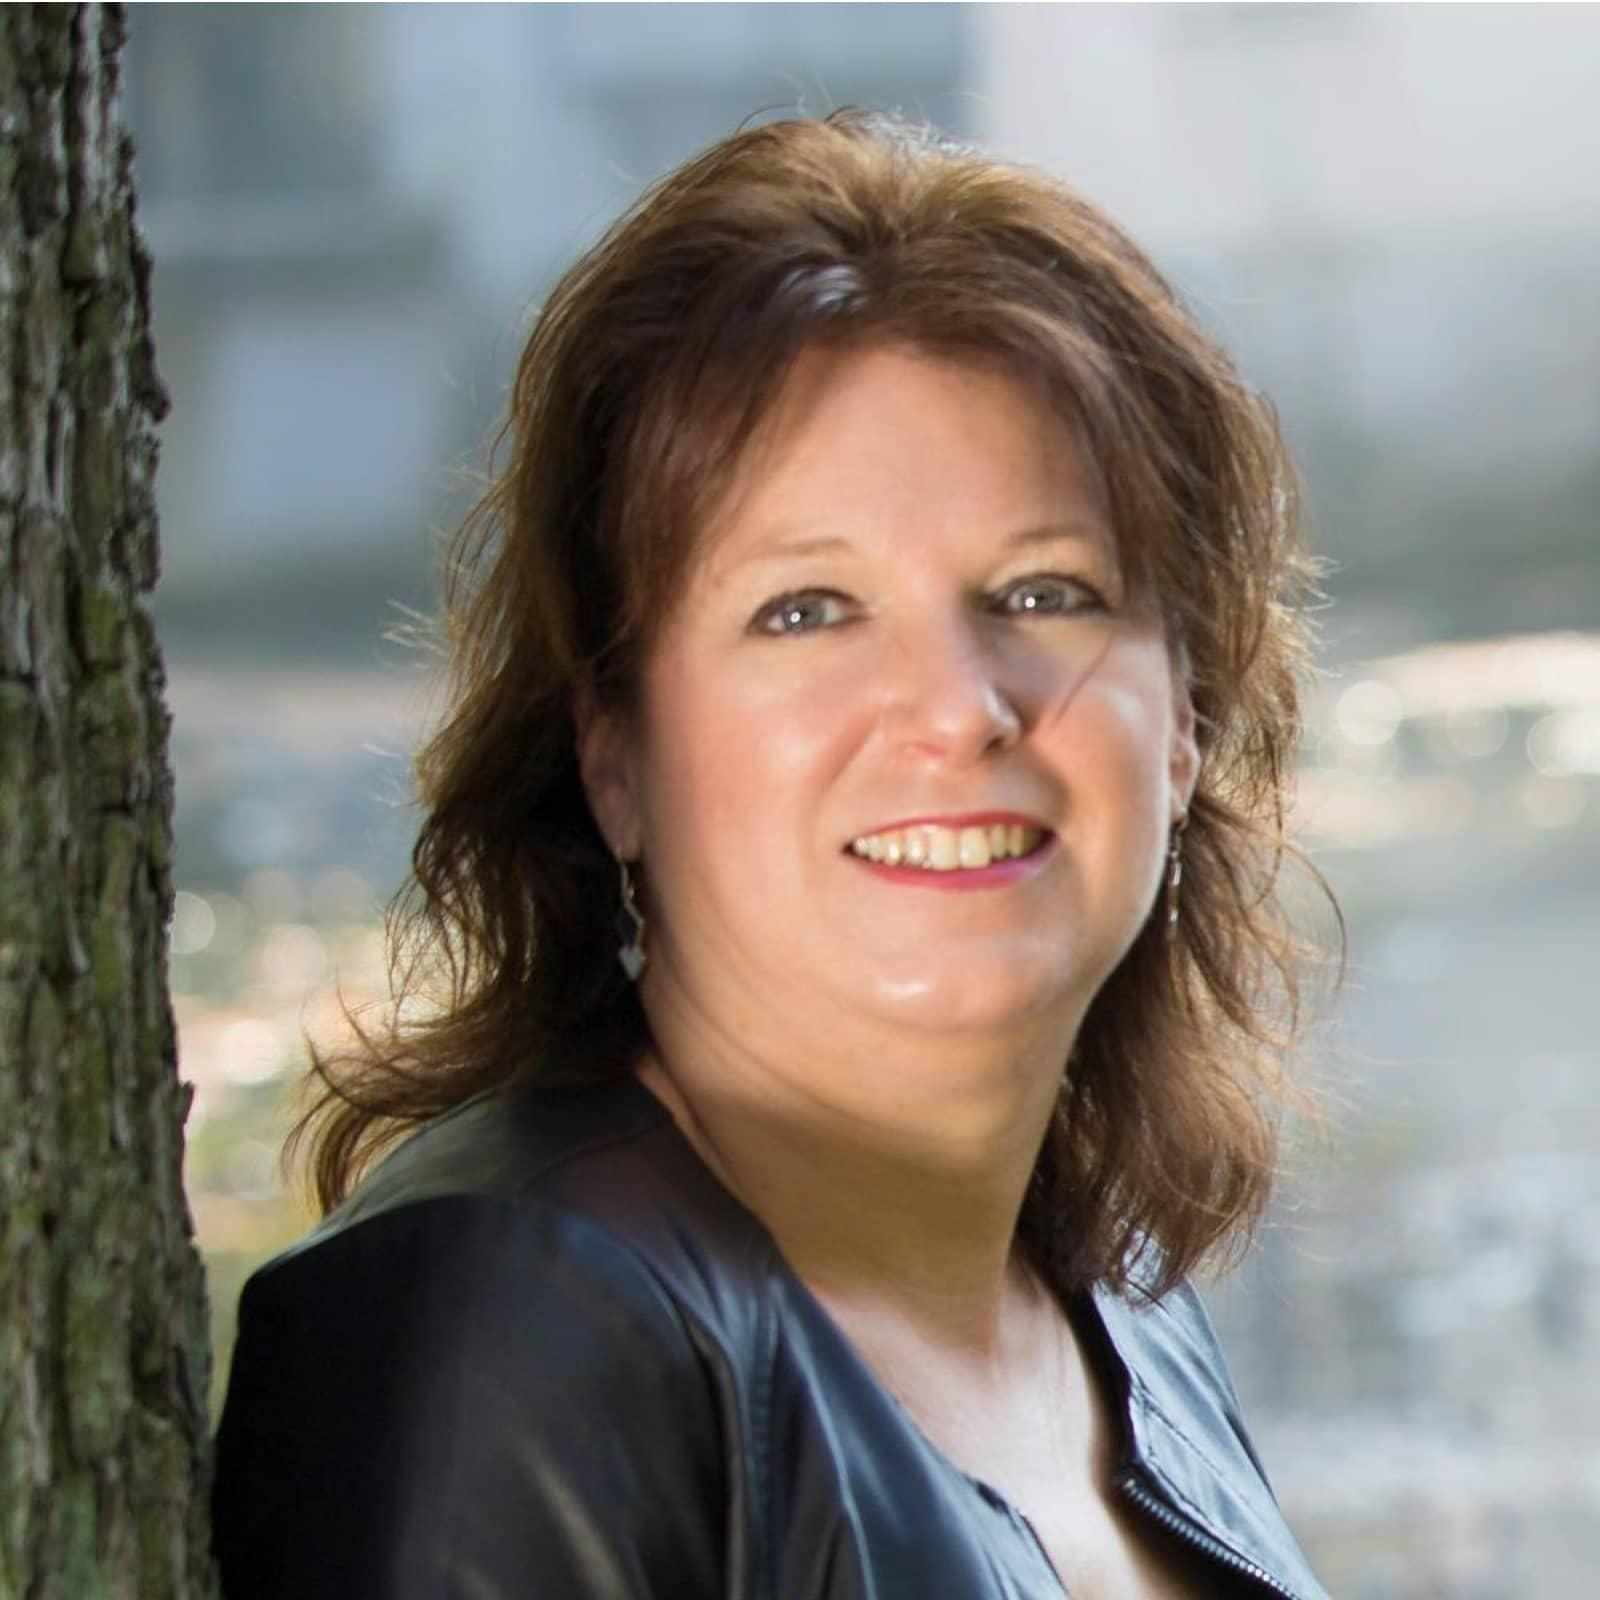 Angela van Horck - Financial expert in Rosmalen